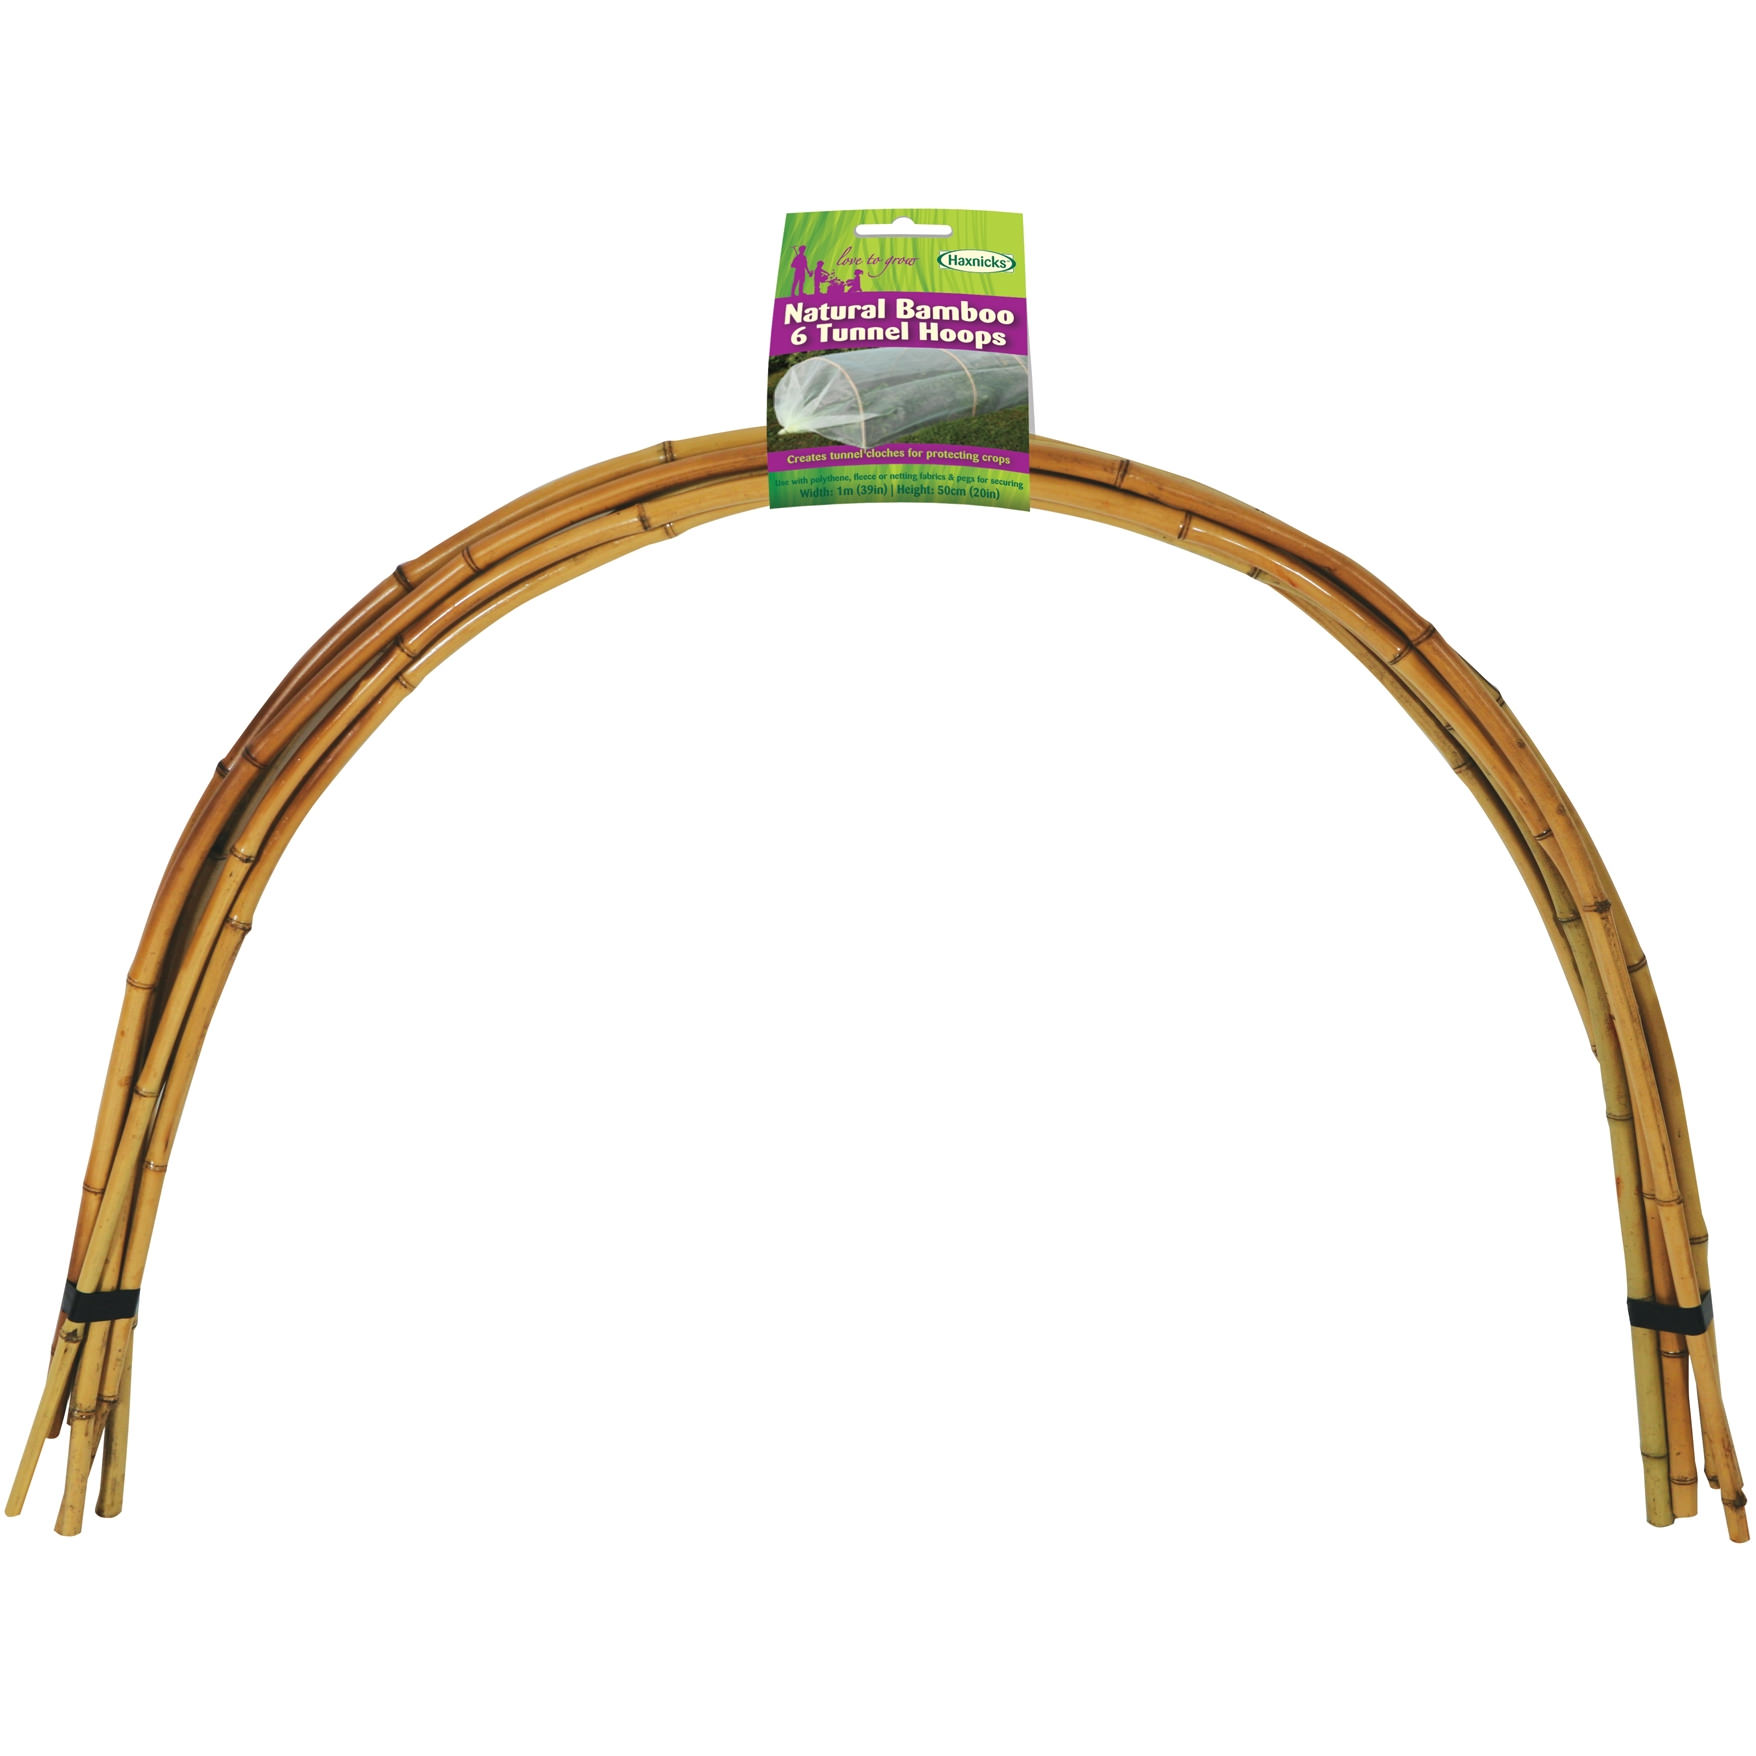 Natural Bamboo Tunnel Hoops (6) 1m x 61cm